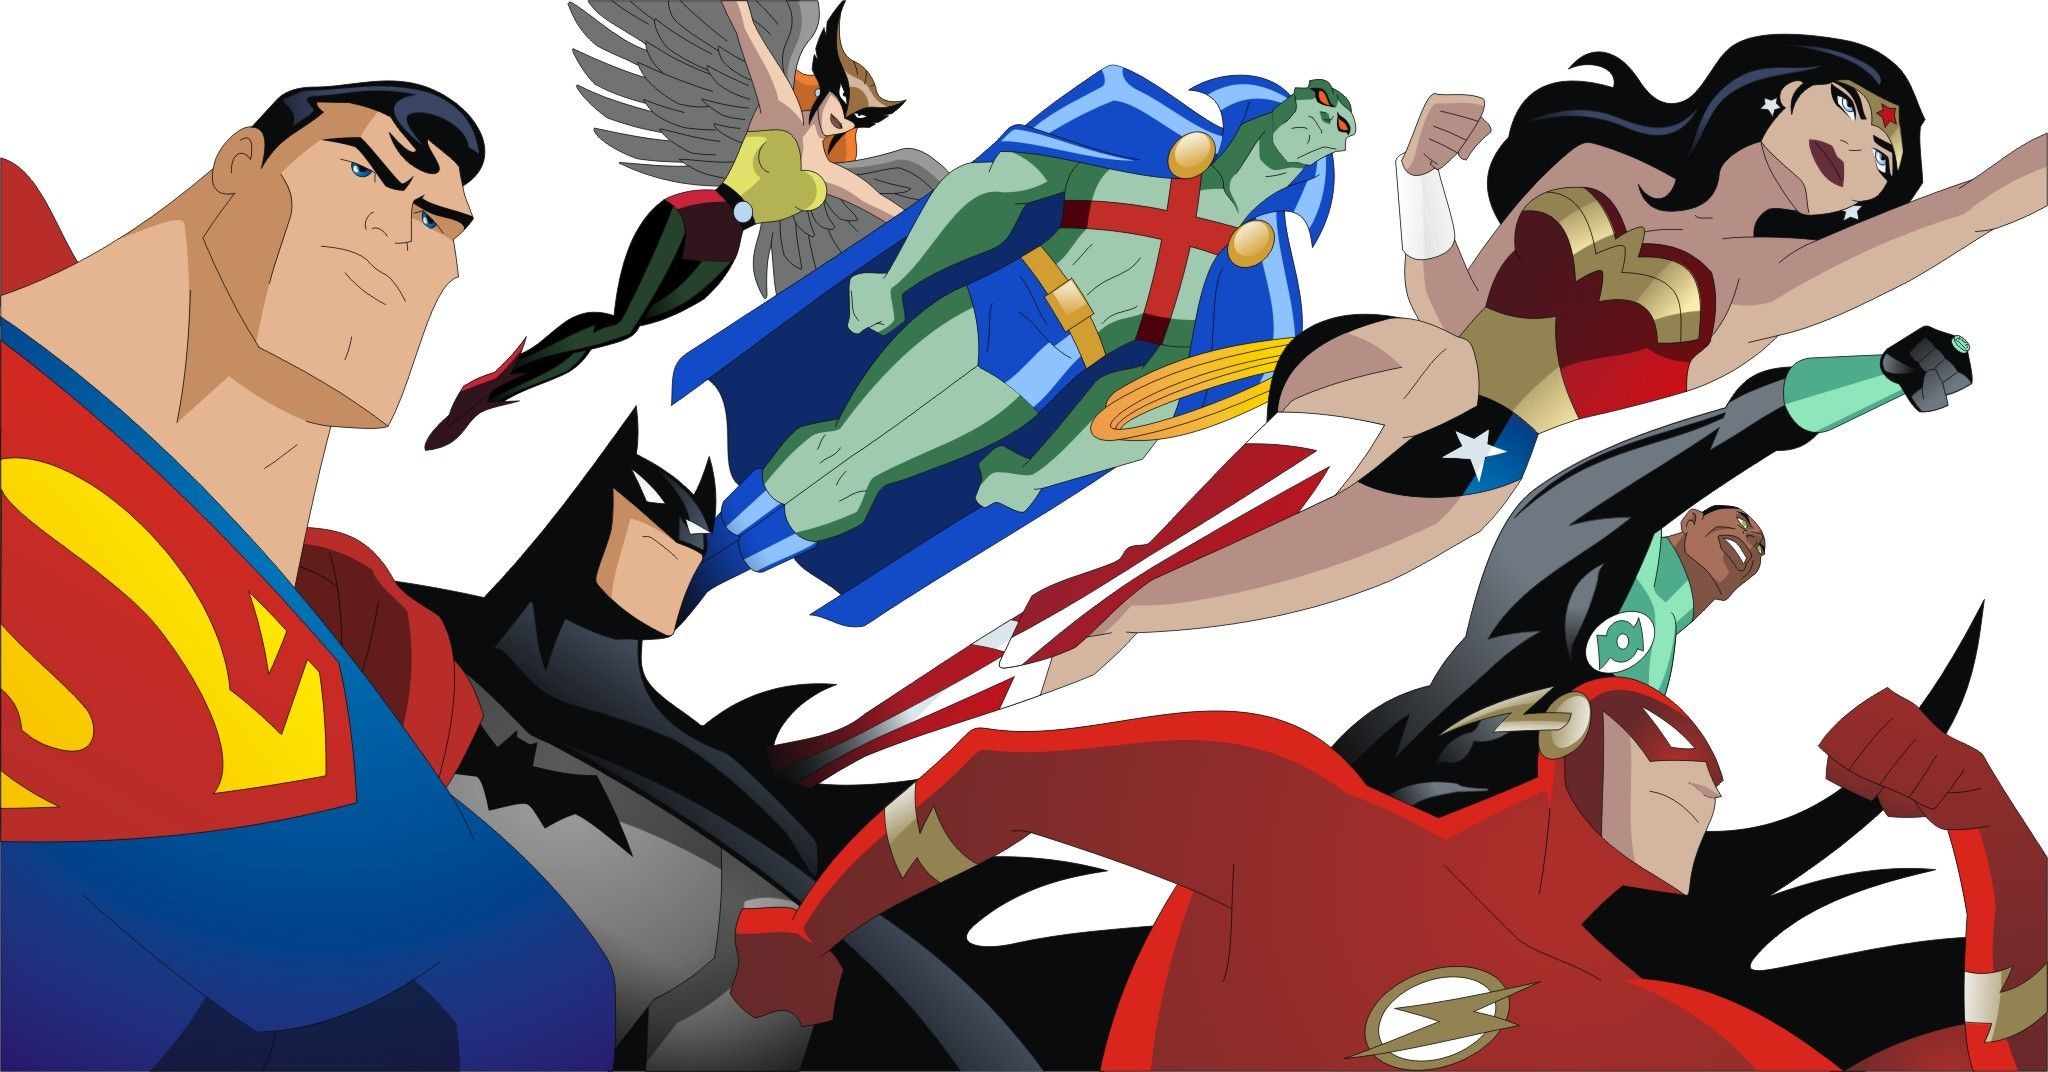 Cartoon Characters Justice League : New justice league animated series coming to cartoon network